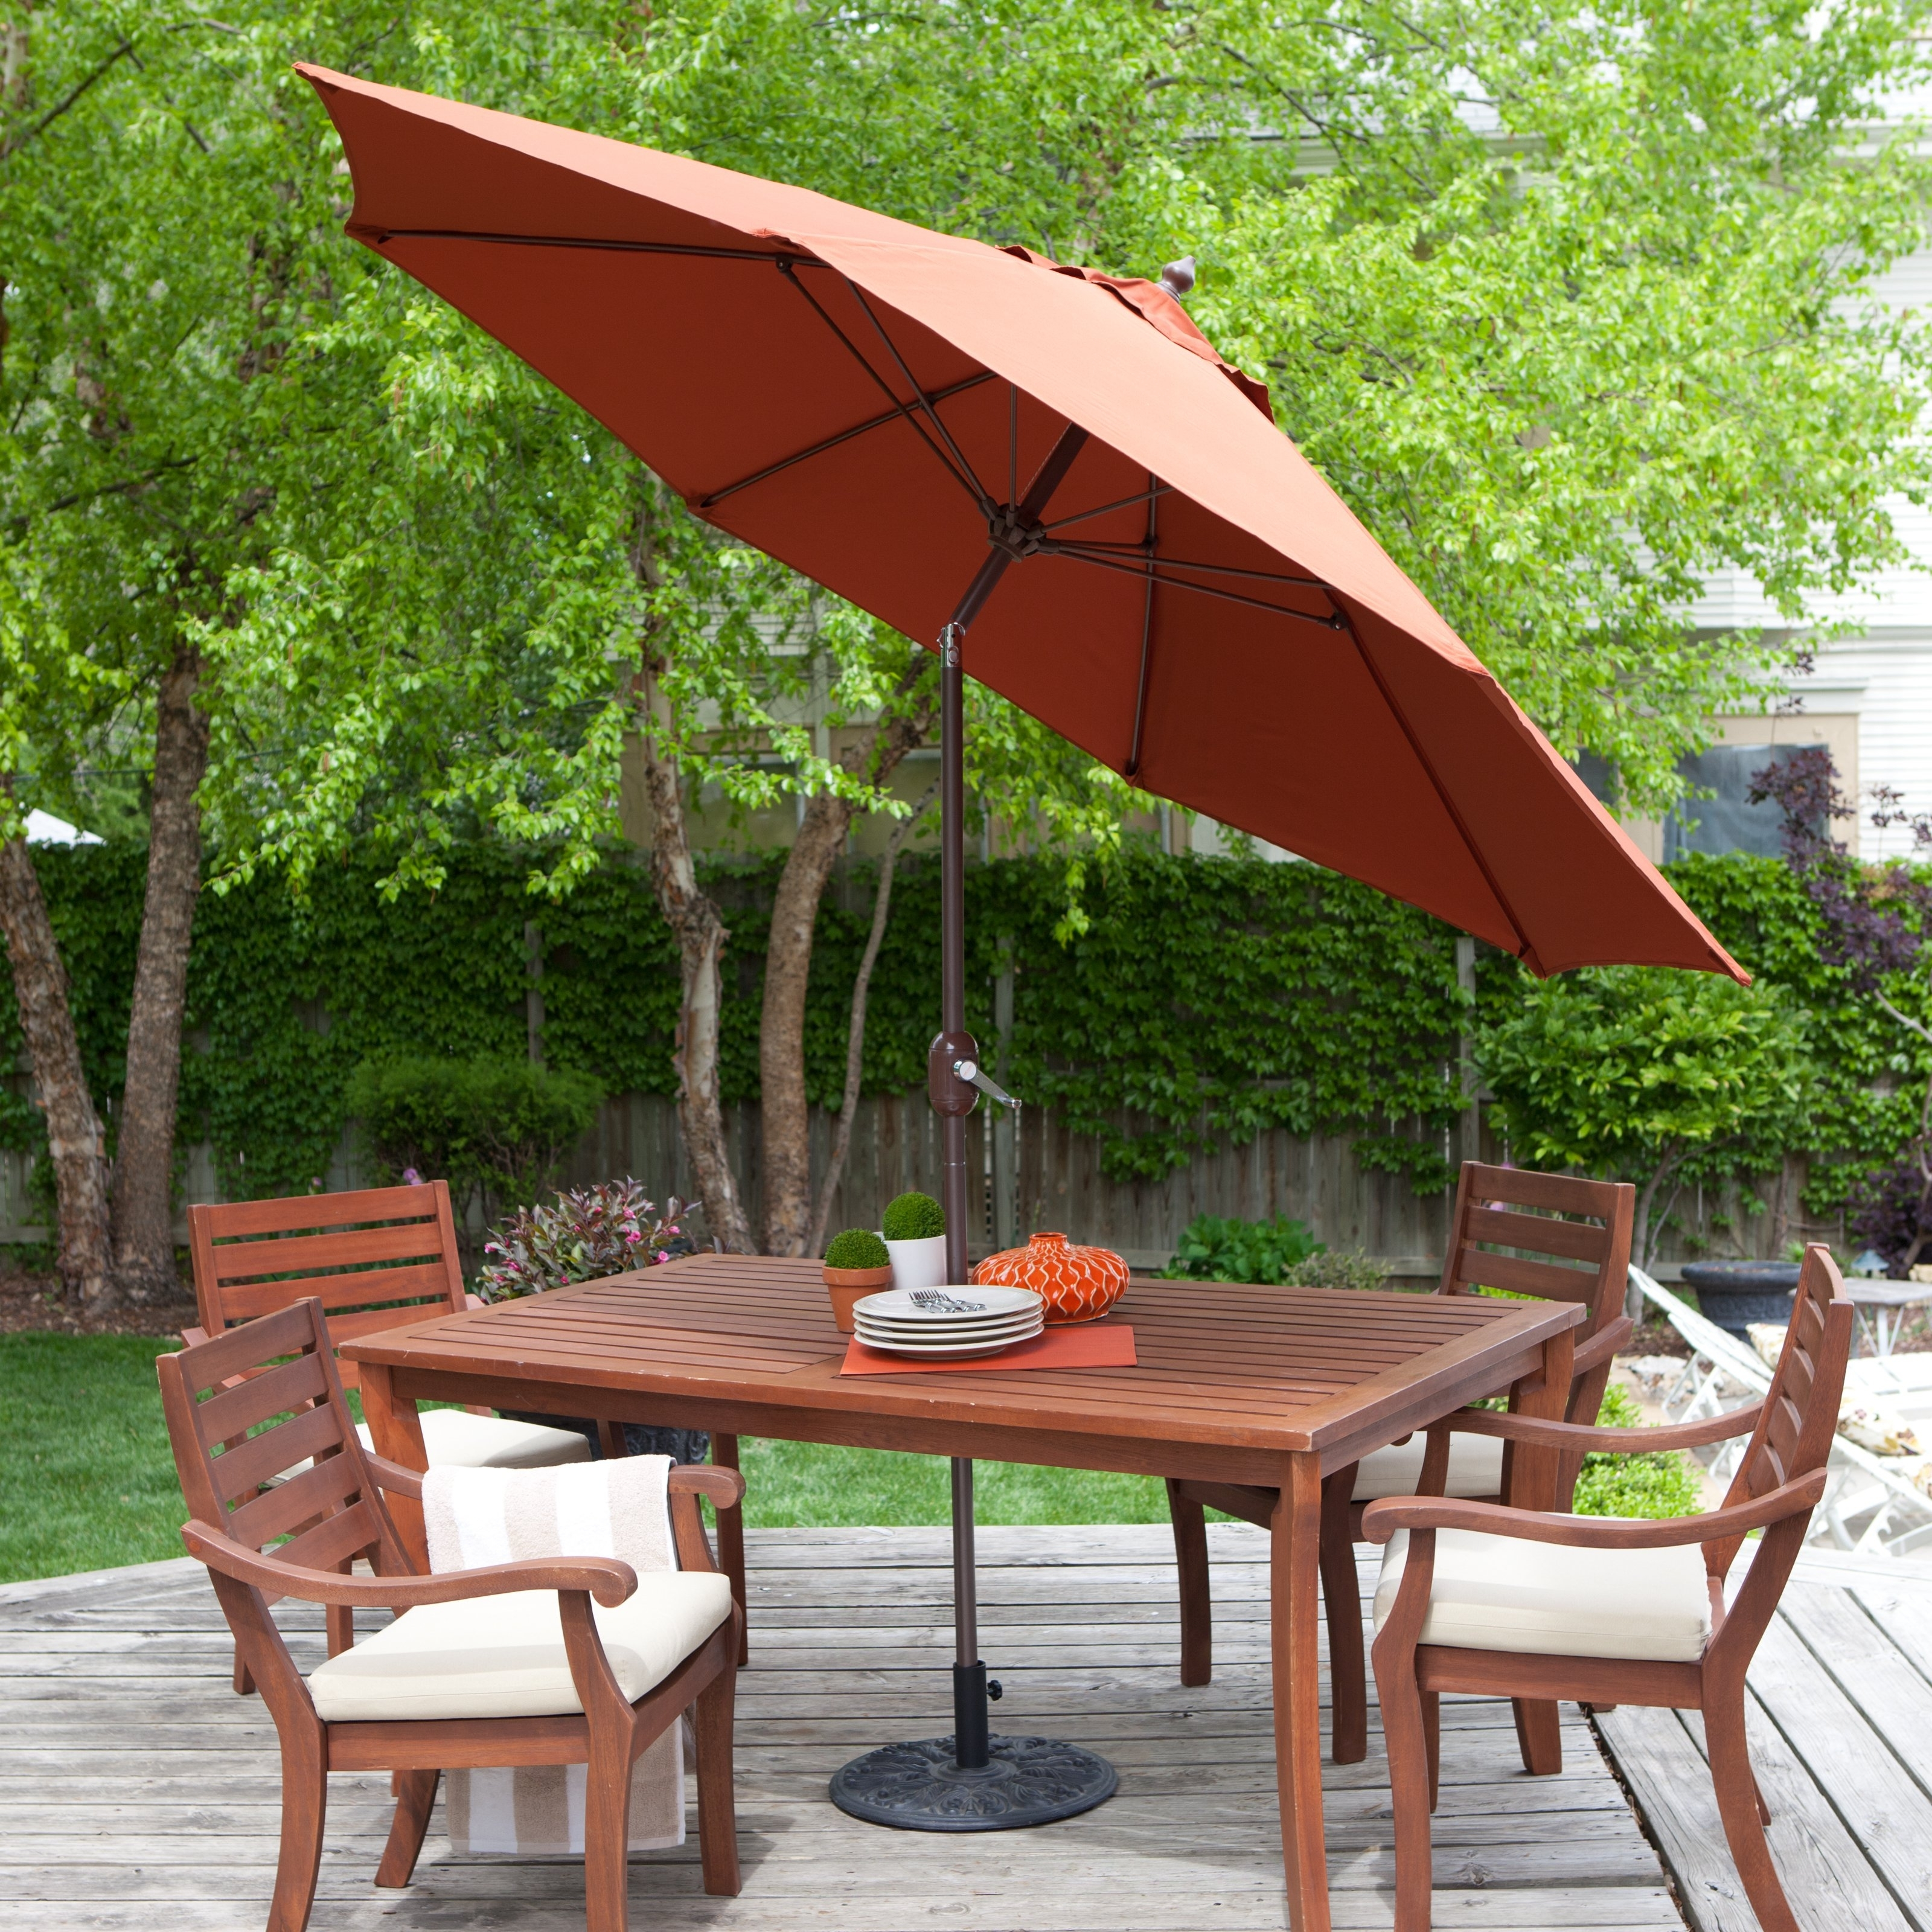 Commercial Patio Umbrellas Sunbrella Intended For Well Known Galtech Sunbrella 11 Ft. Maximum Shade Deluxe Aluminum Auto Tilt (Gallery 19 of 20)